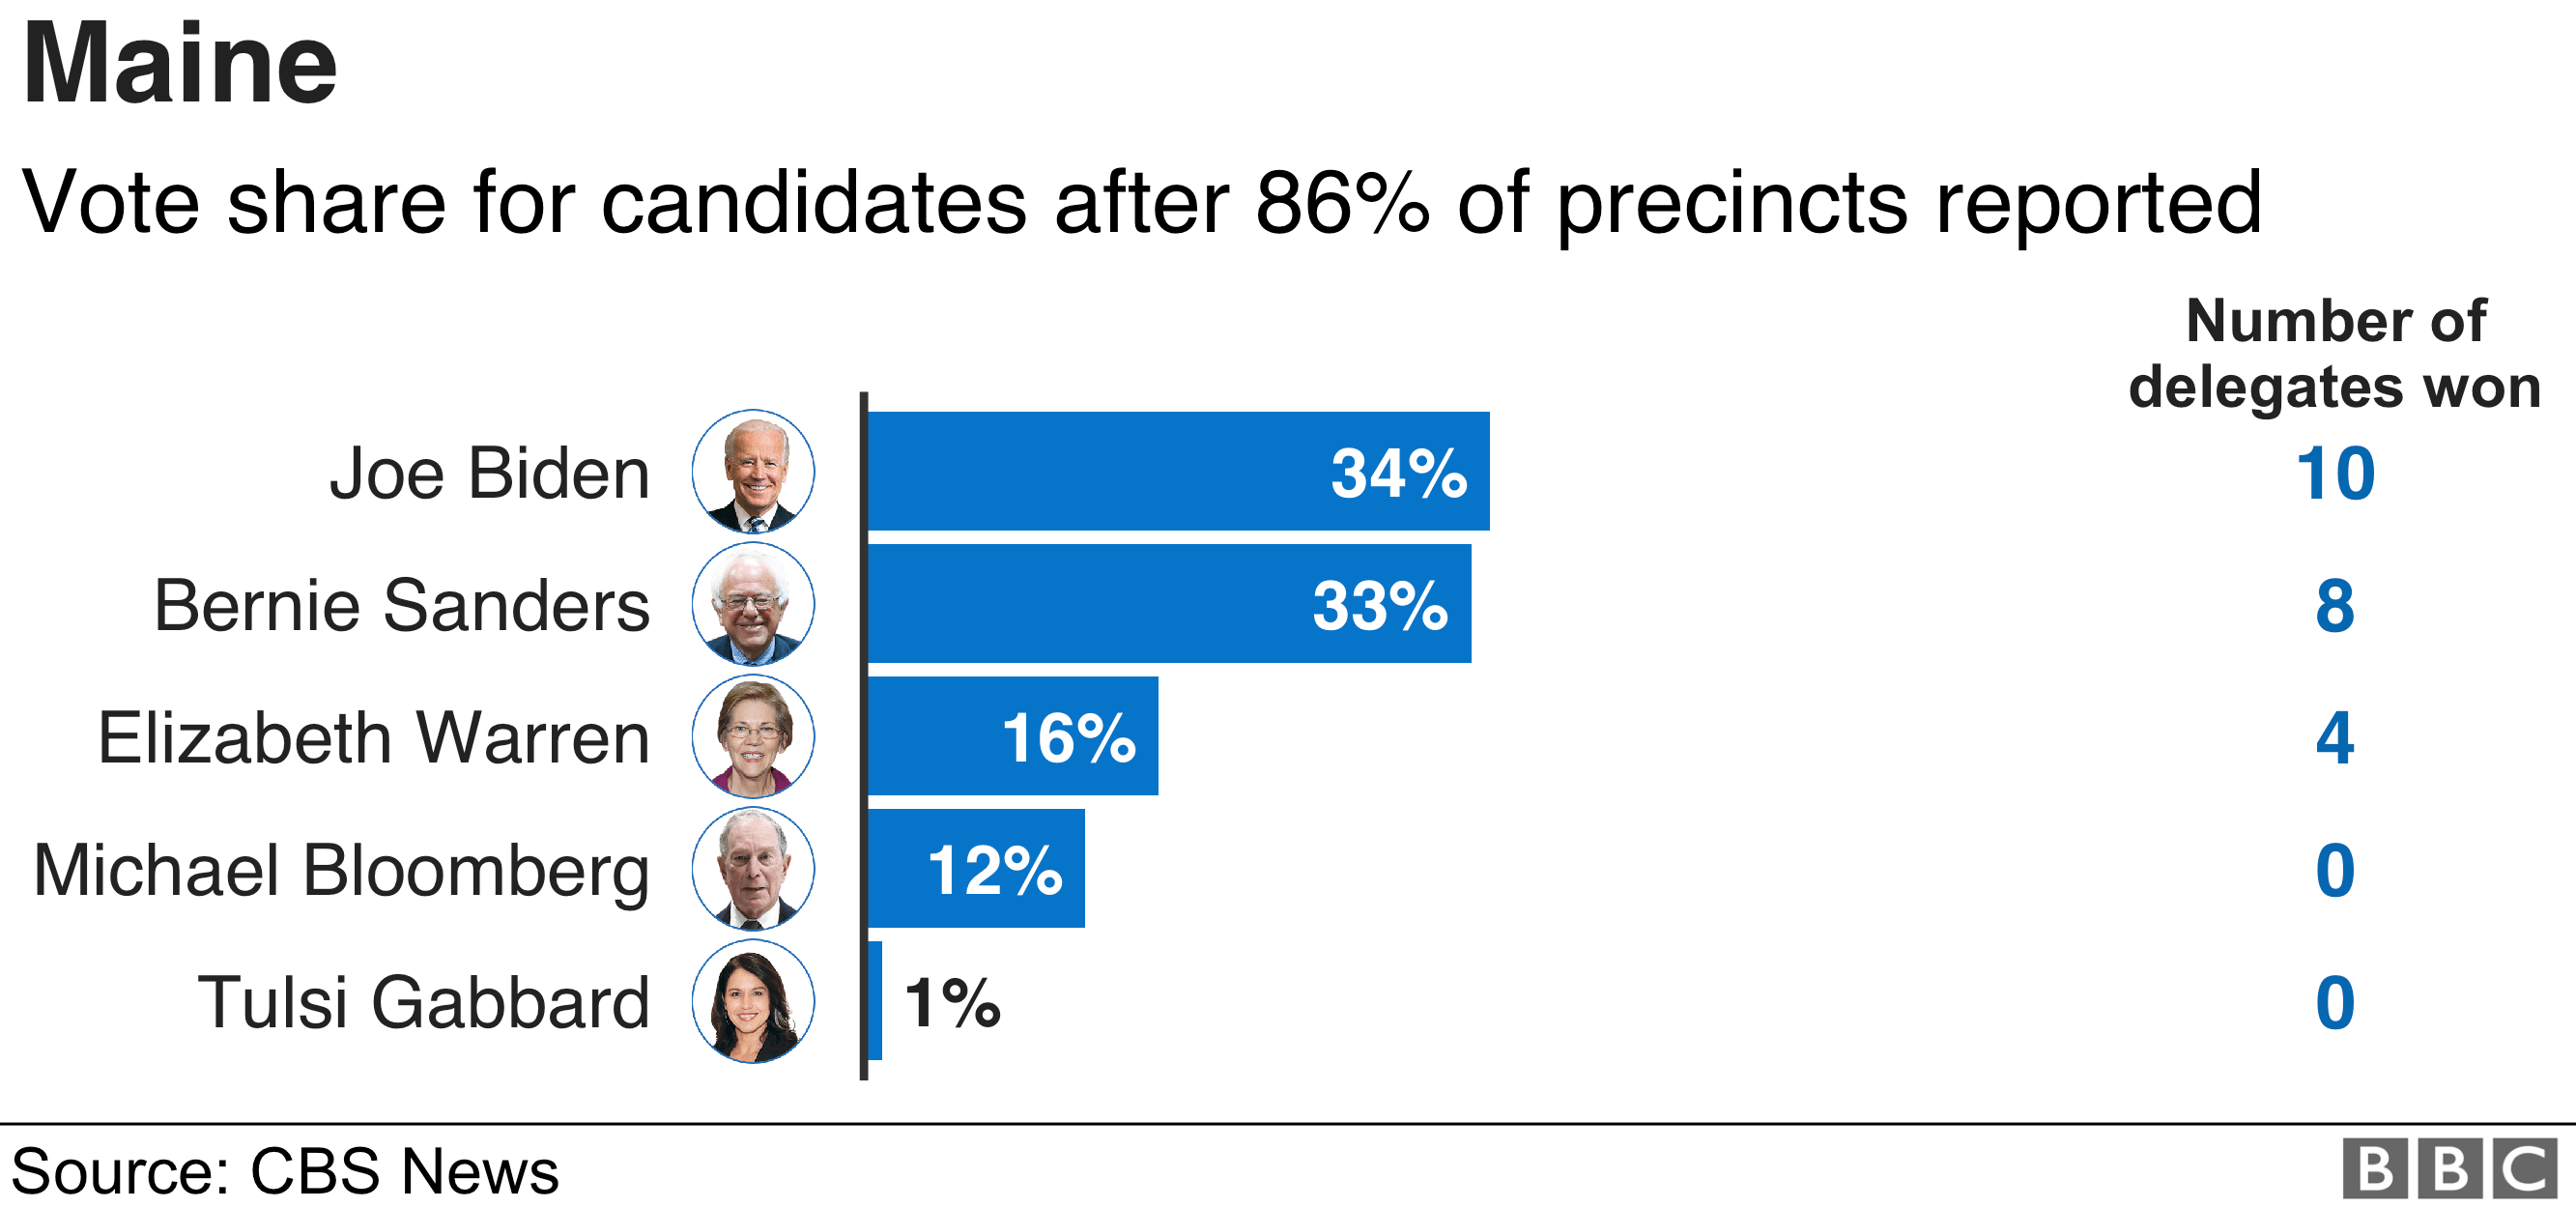 Maine results